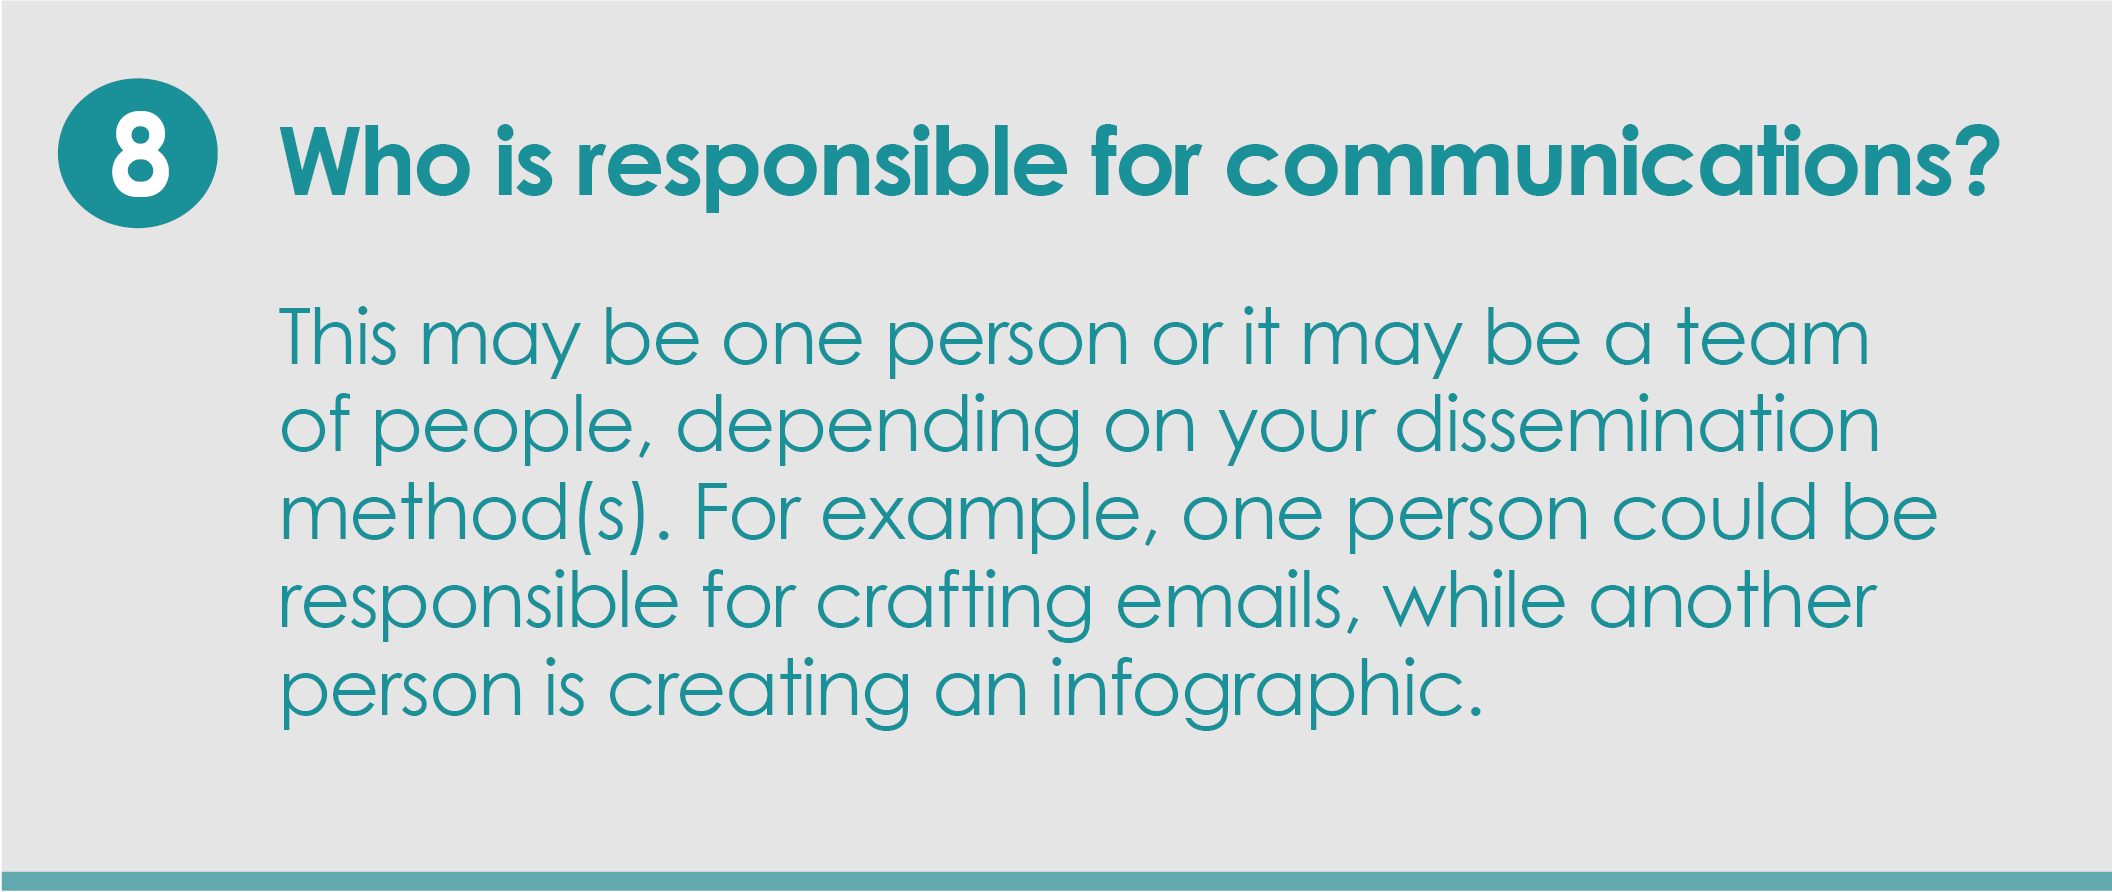 Step 8: Who is responsible for communications? This may be one person or it may be a team of people, depending on your dissemination method(s). For example, one person could be responsible for crafting emails, while another person is creating an infographic.